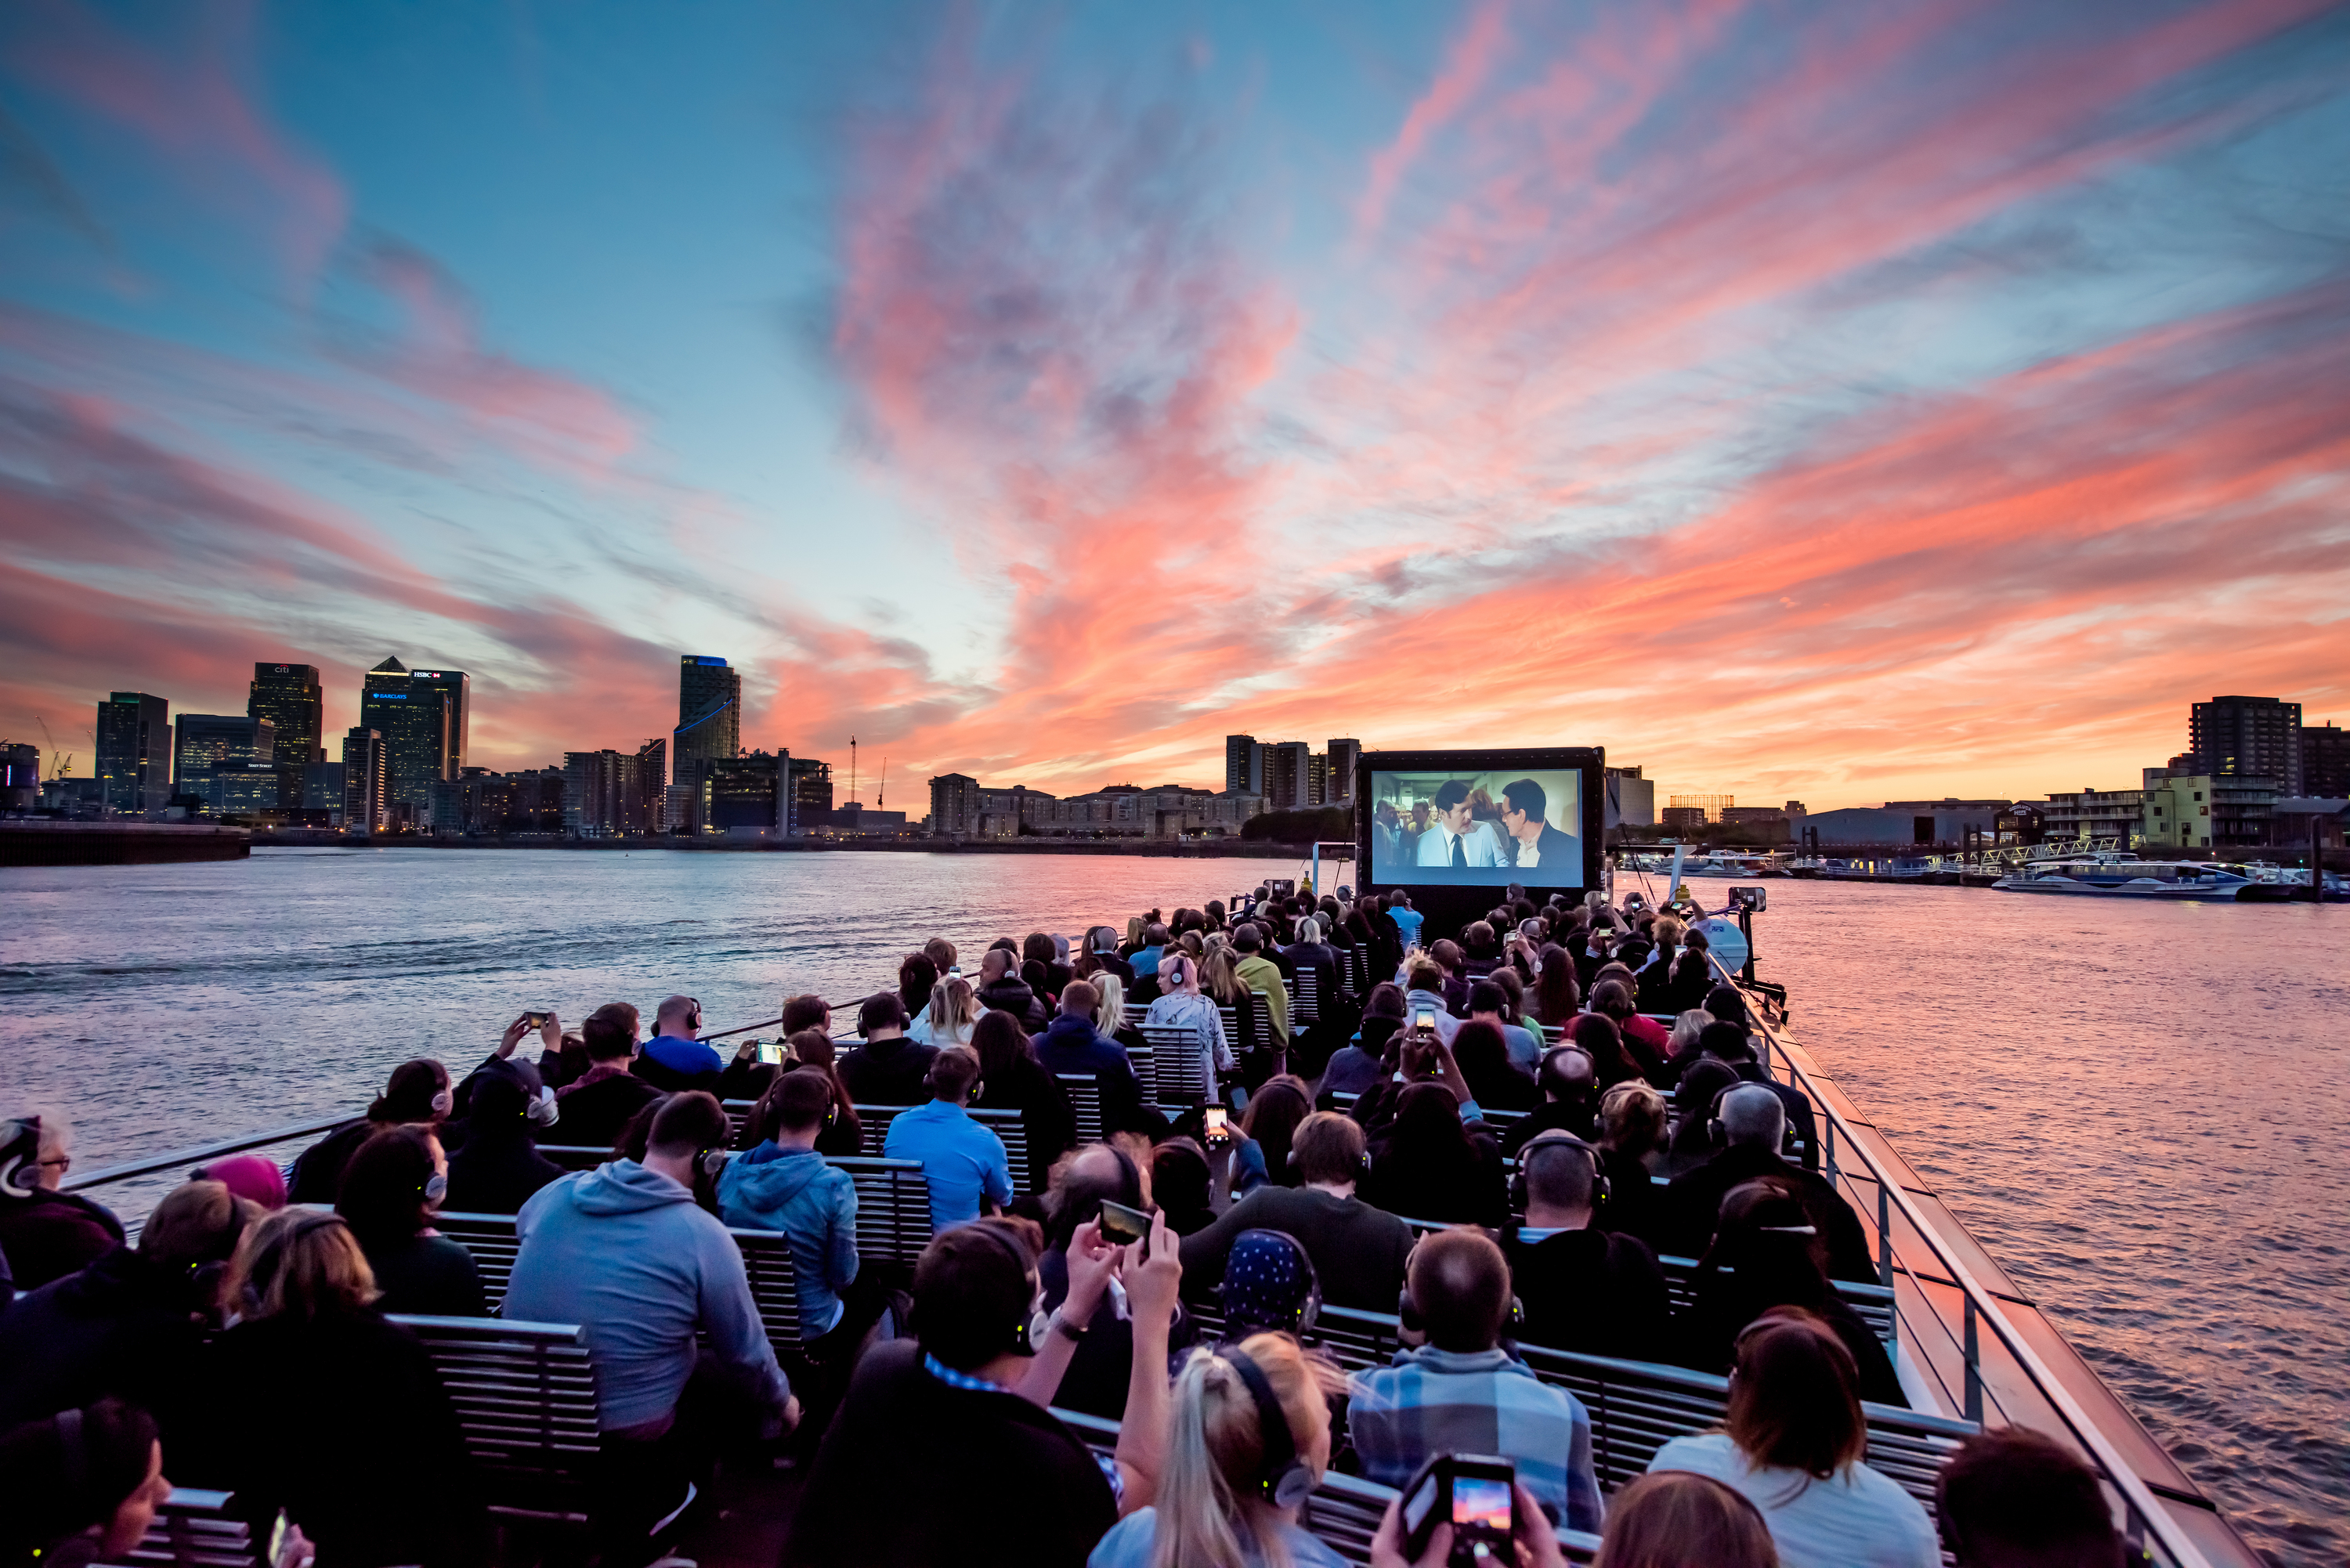 Midsummer Movies in association with Rekorderlig